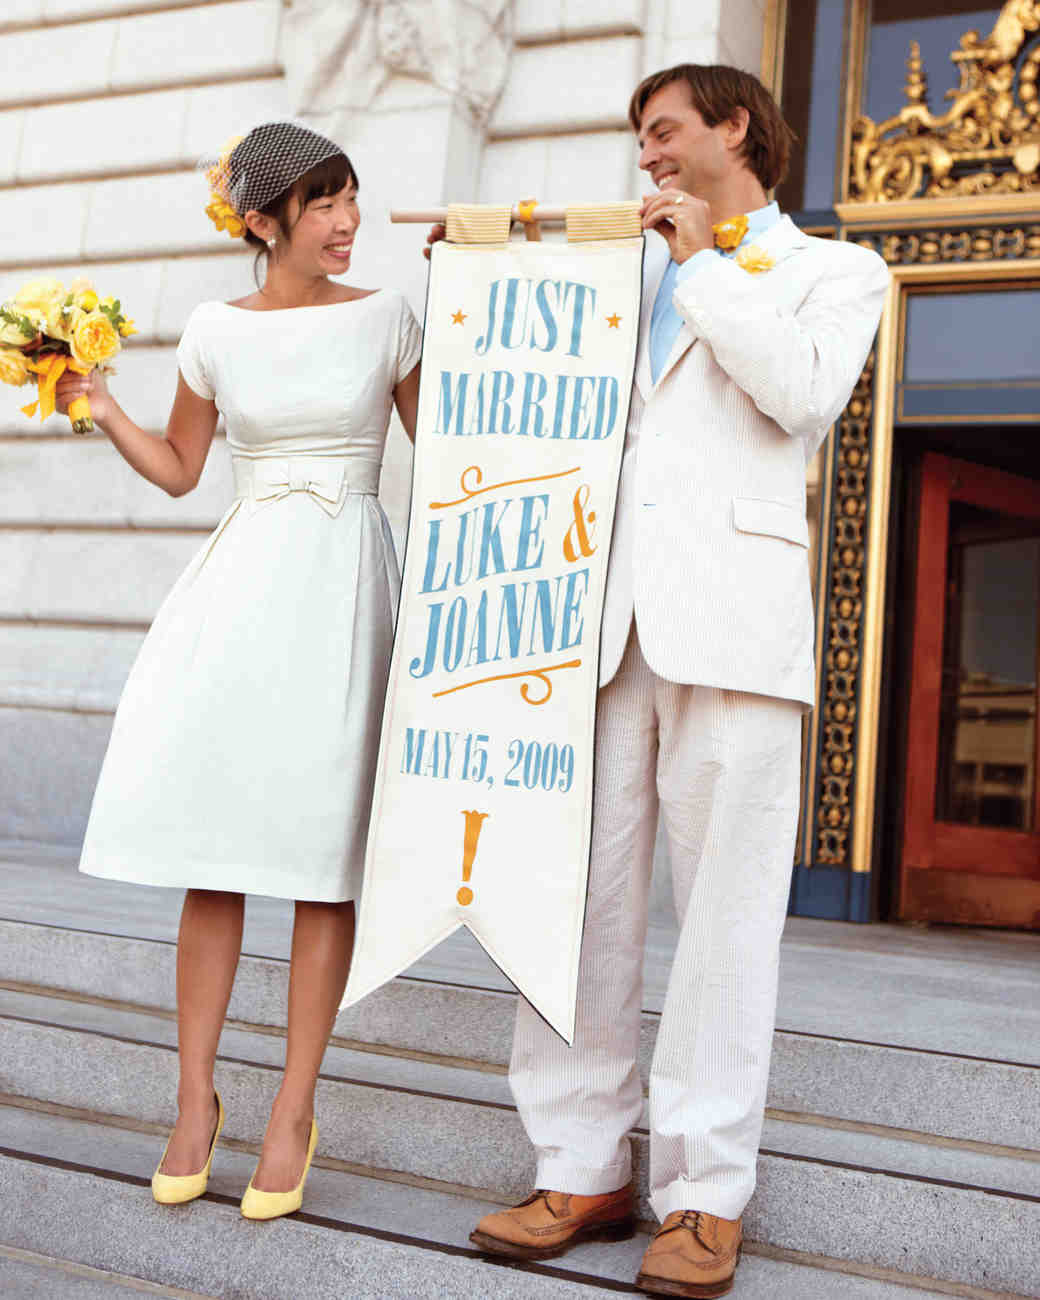 just-married-banner-mwd104950.jpg